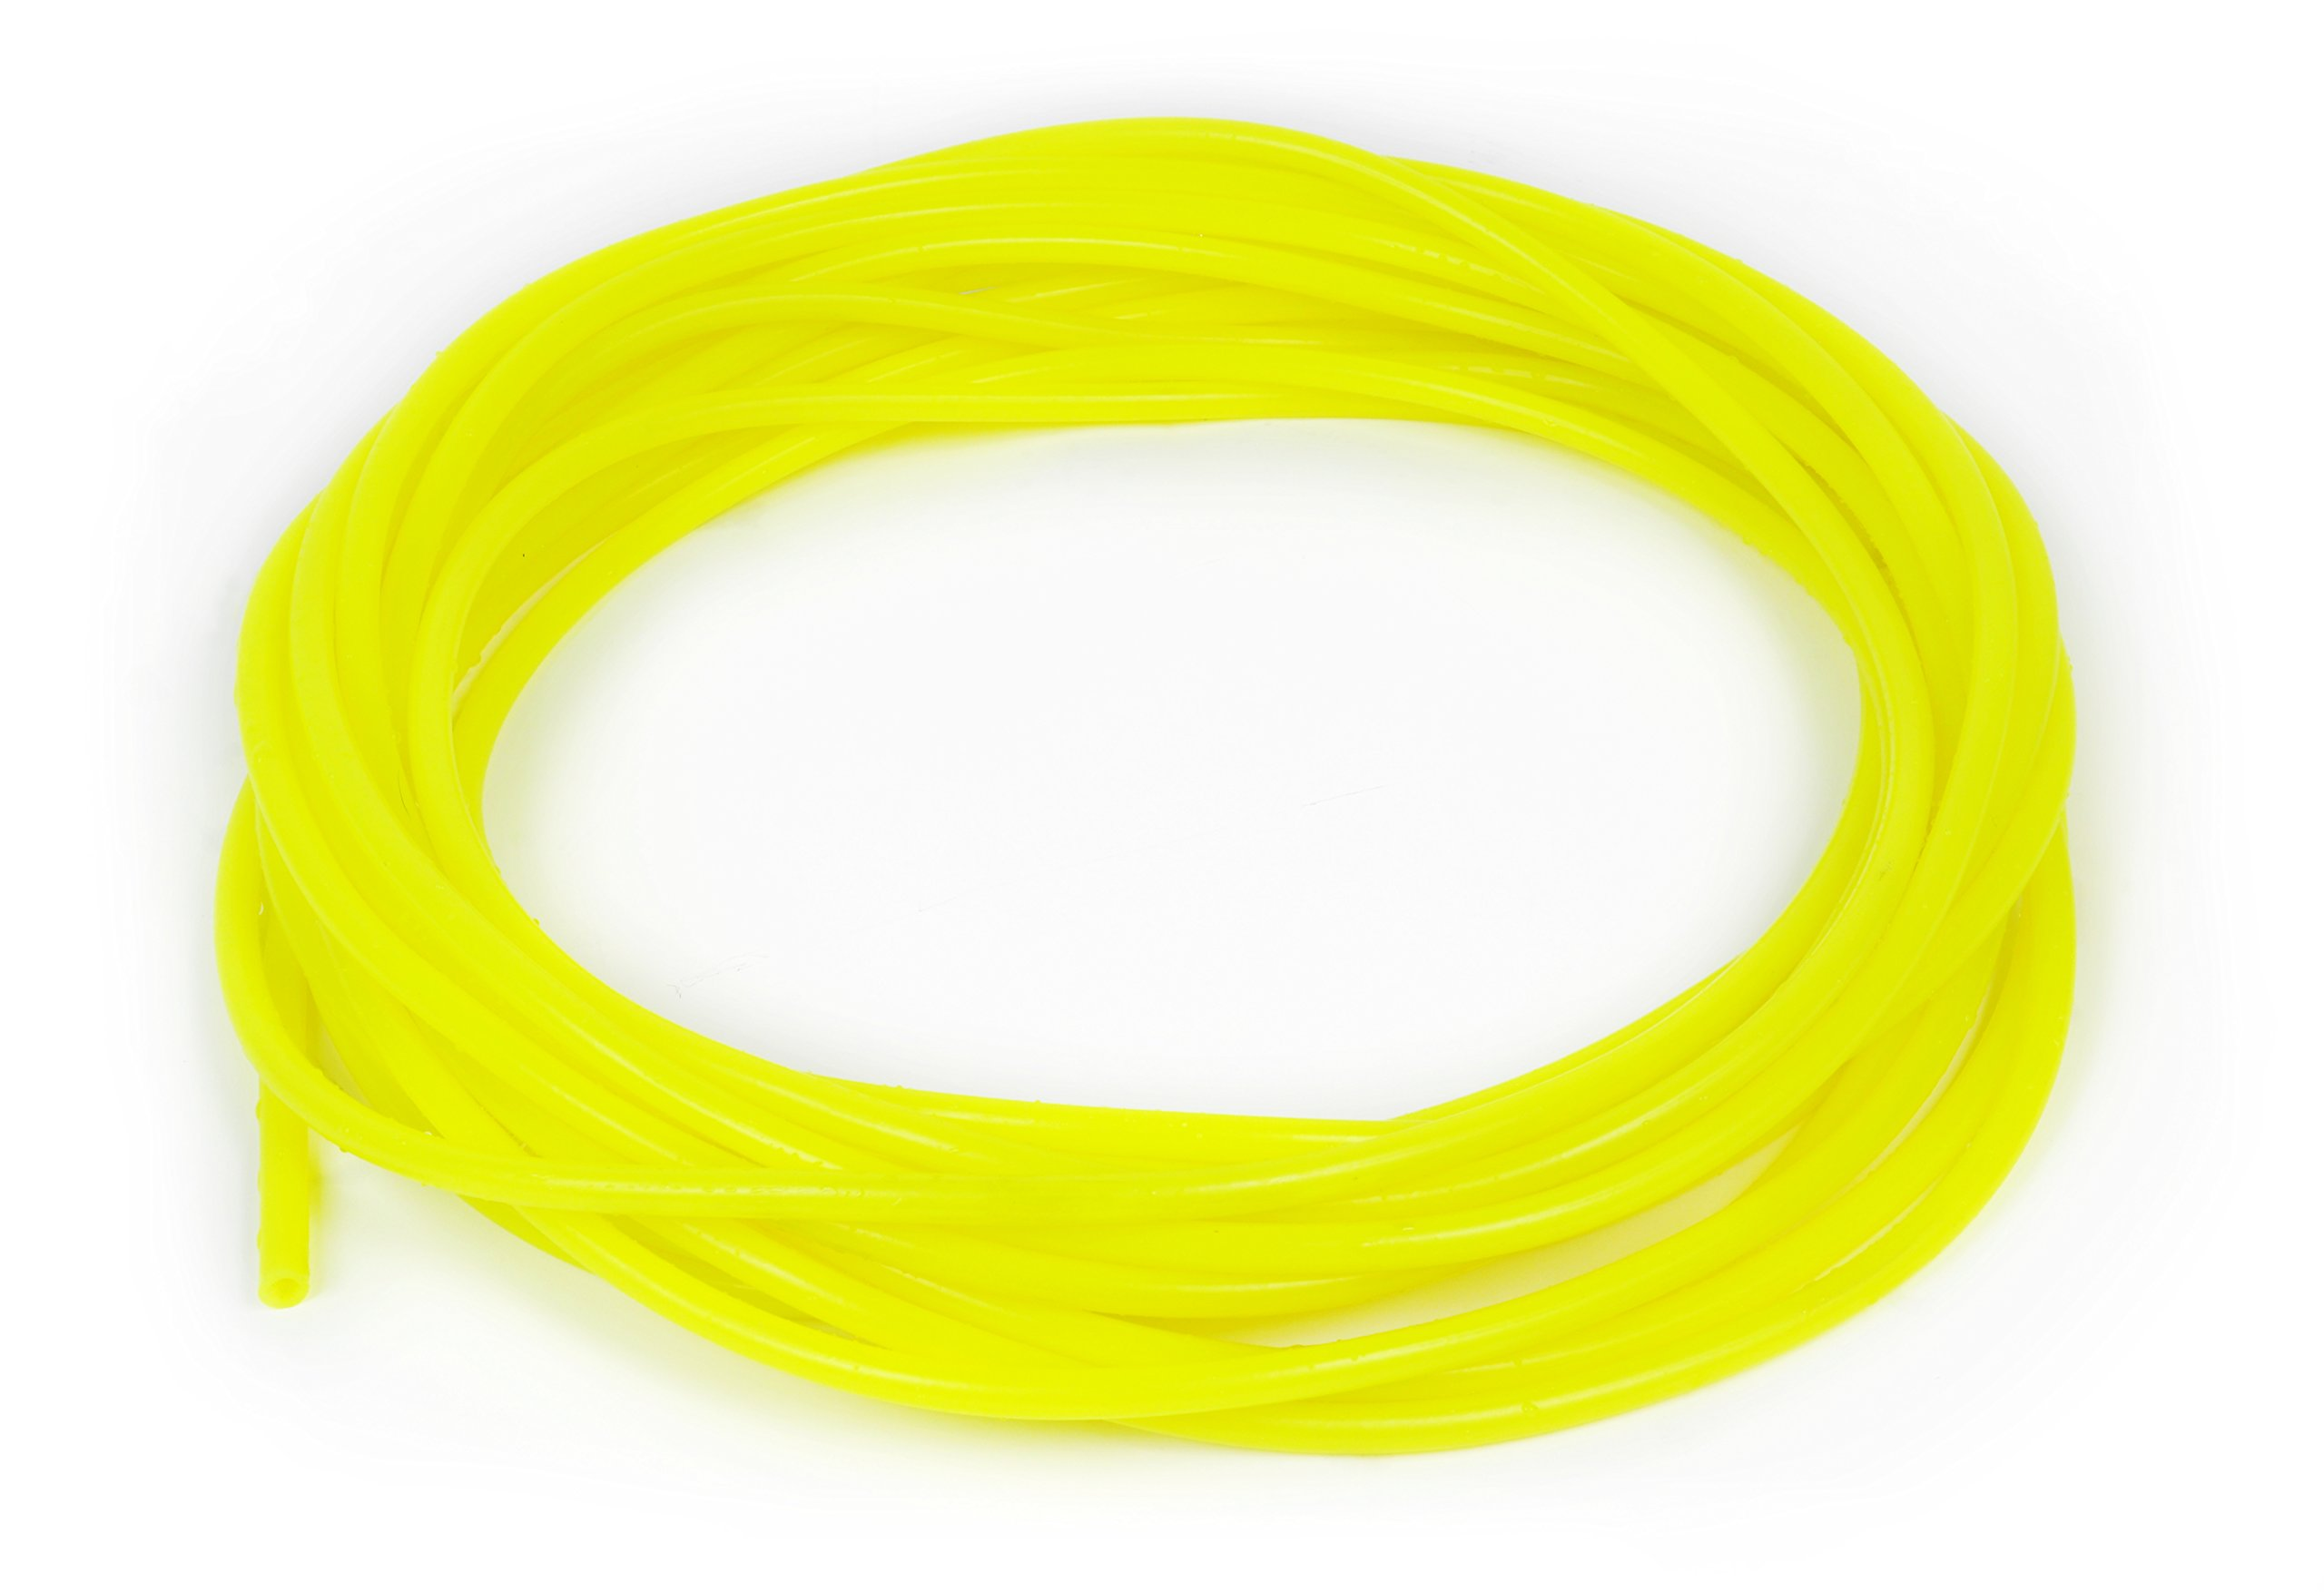 Best Divers TK0152Y, Unisex Silicone Tube - Adult, Yellow, One Size